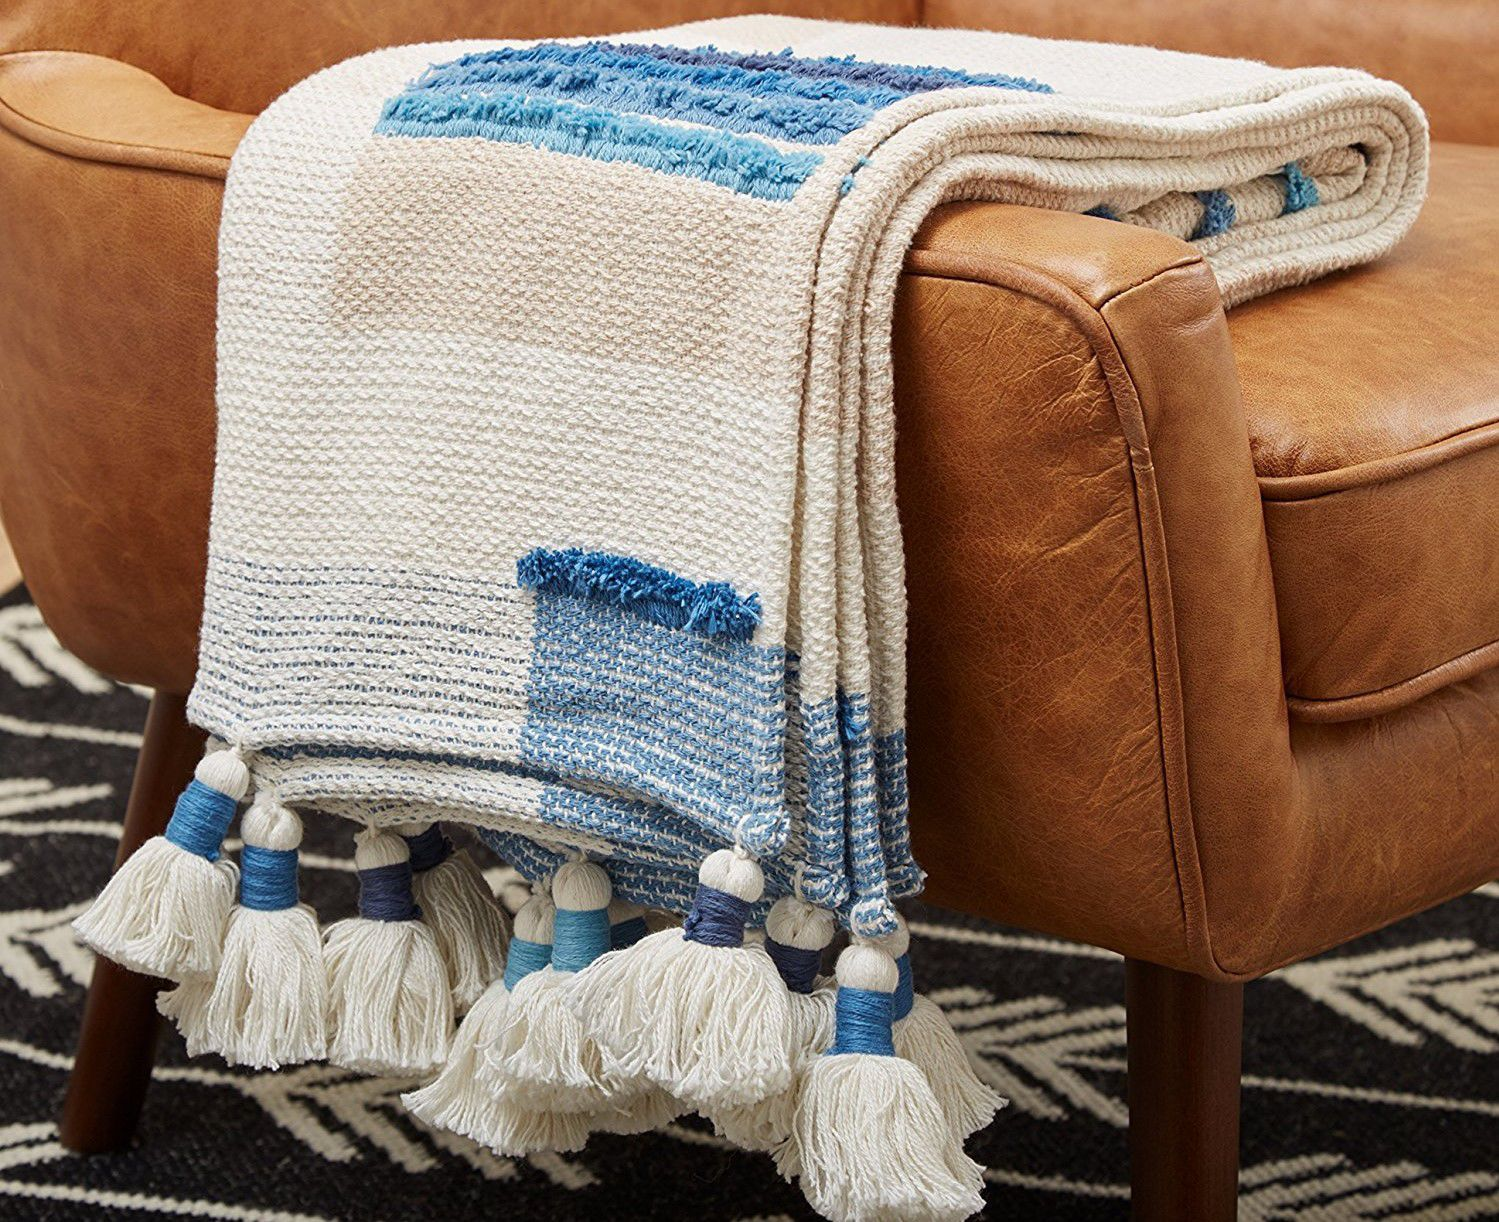 Throw Blankets 4 Cozy Throw Blankets For Fall Home Garden Tucson